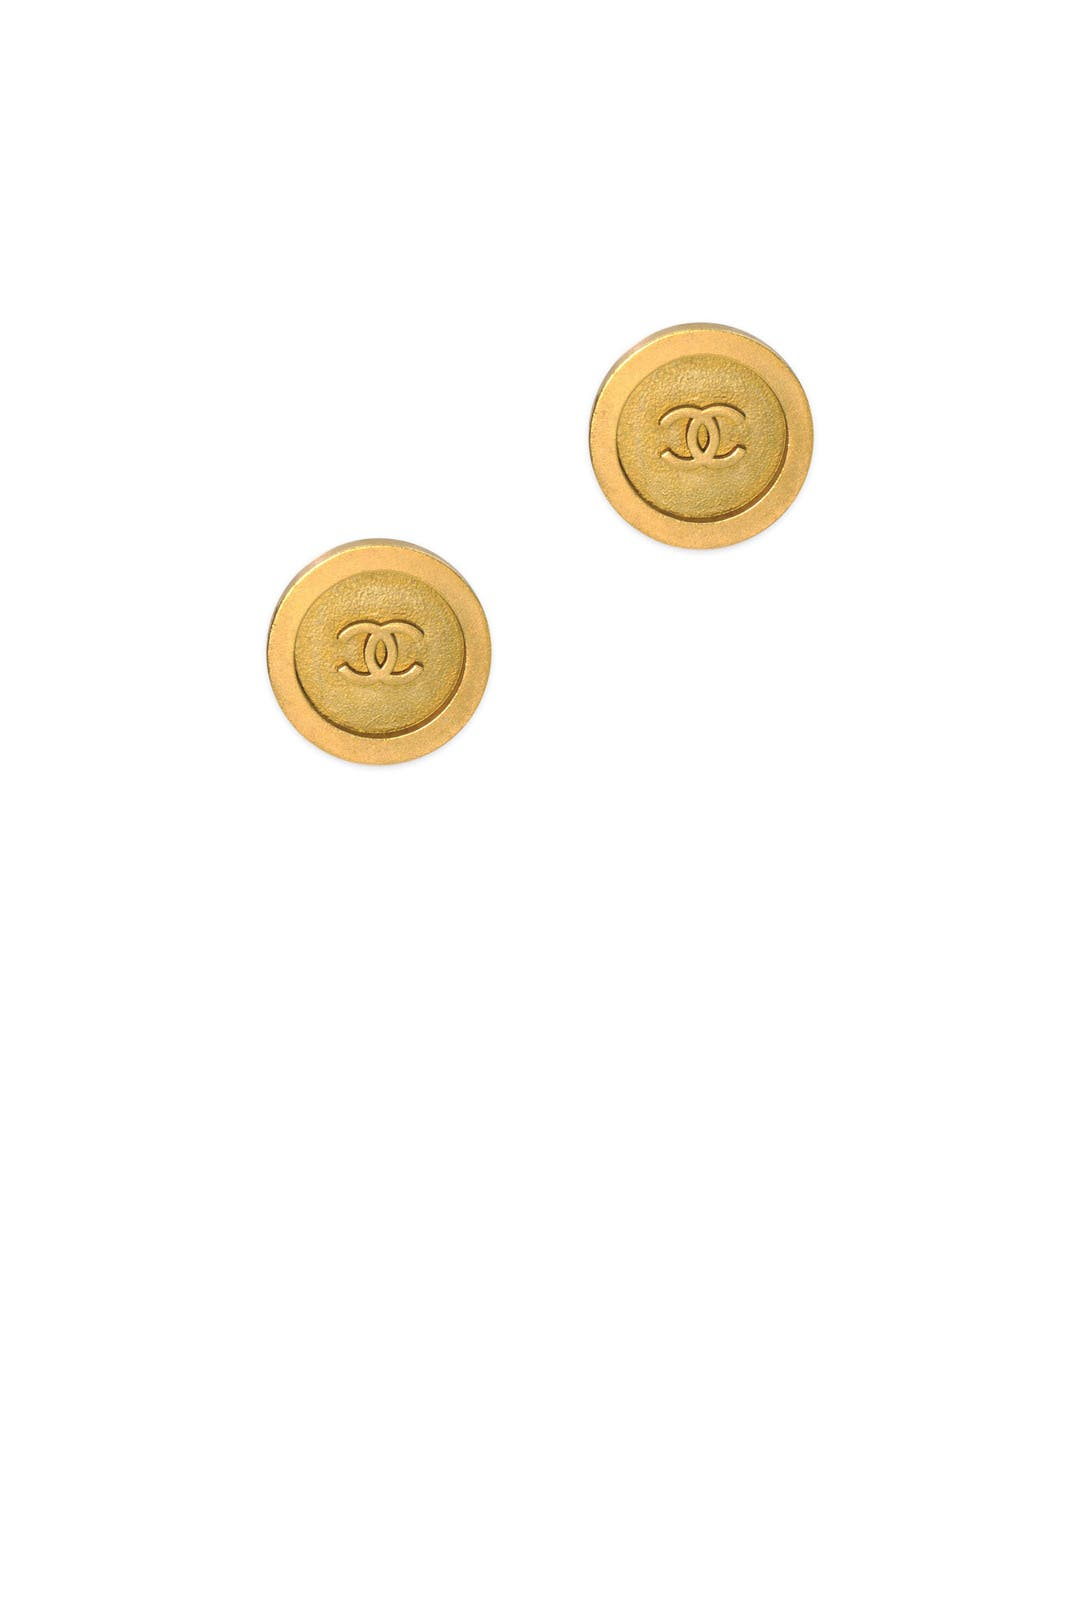 858d6148caa2 Vintage Chanel Round CC Earring by Decades Vintage for $100 | Rent the  Runway